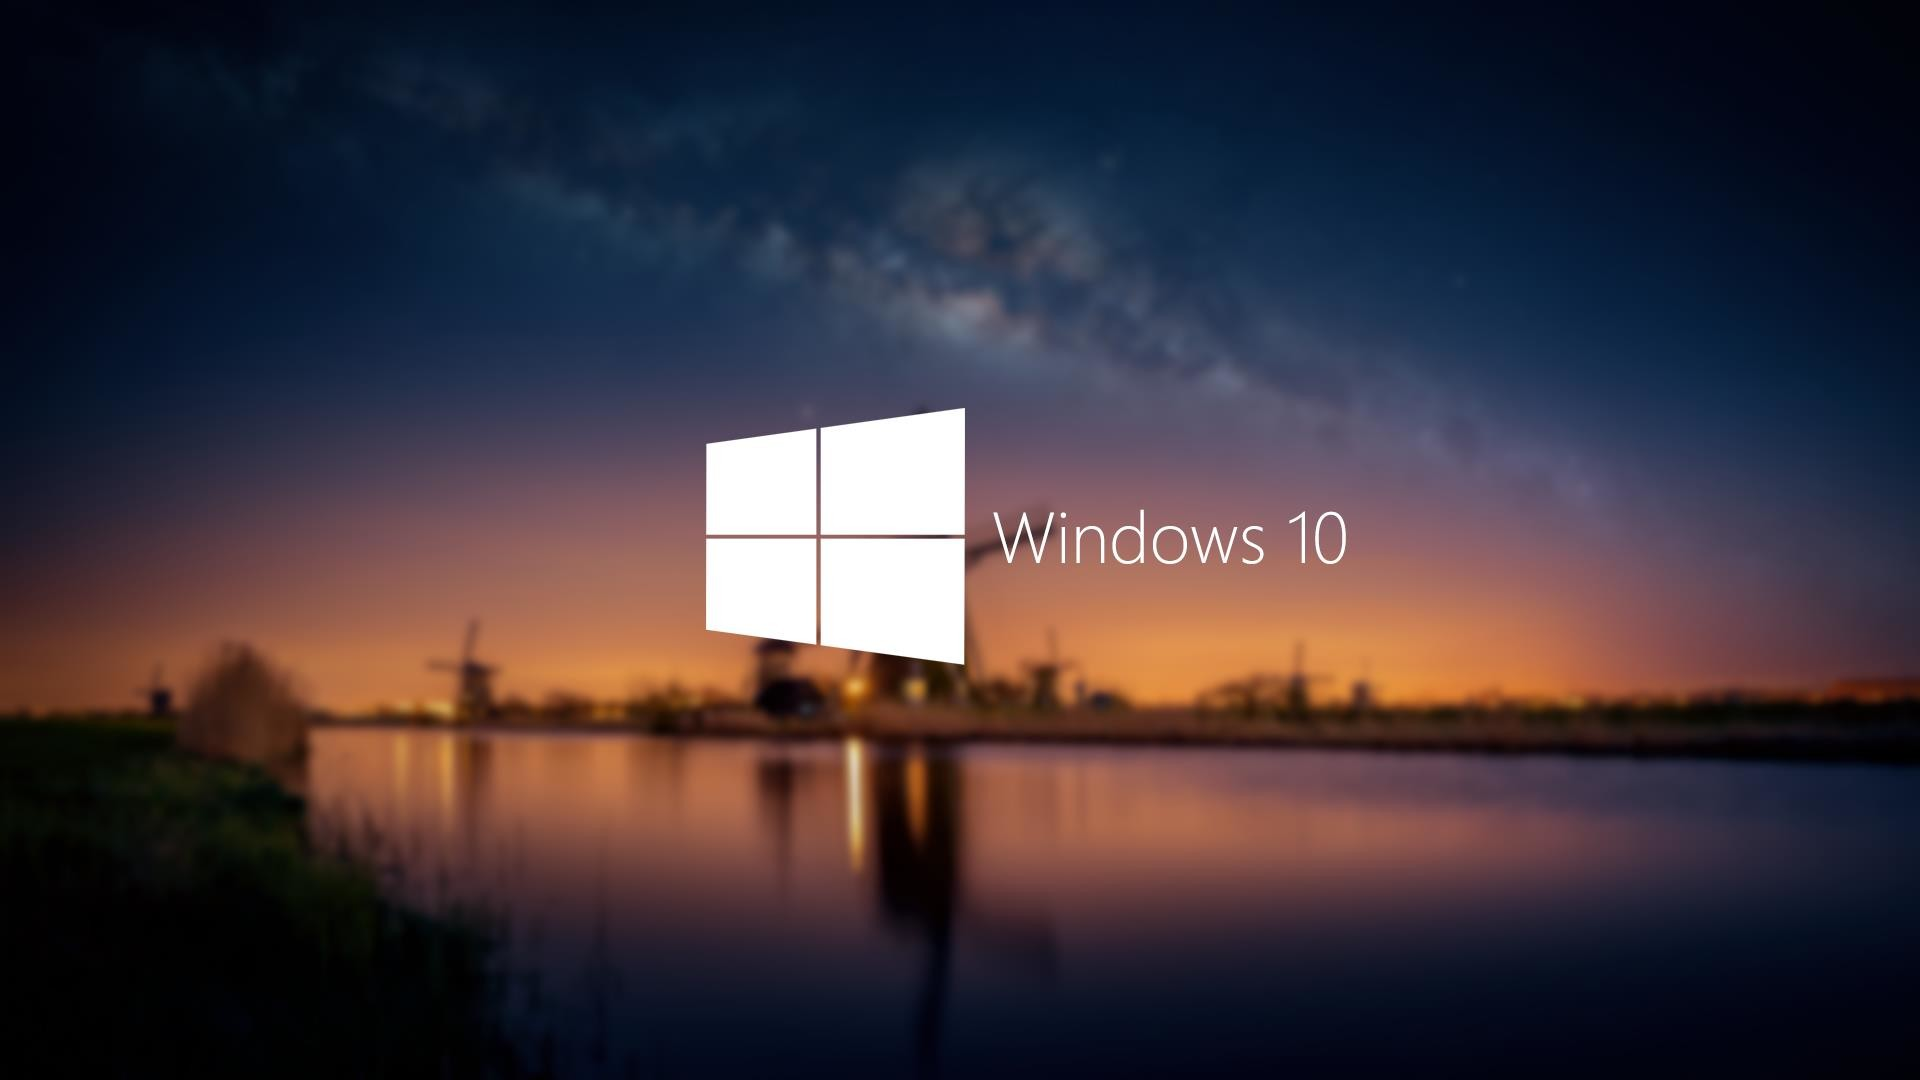 Windows 10 Hd Desktop Wallpaper 74 Images